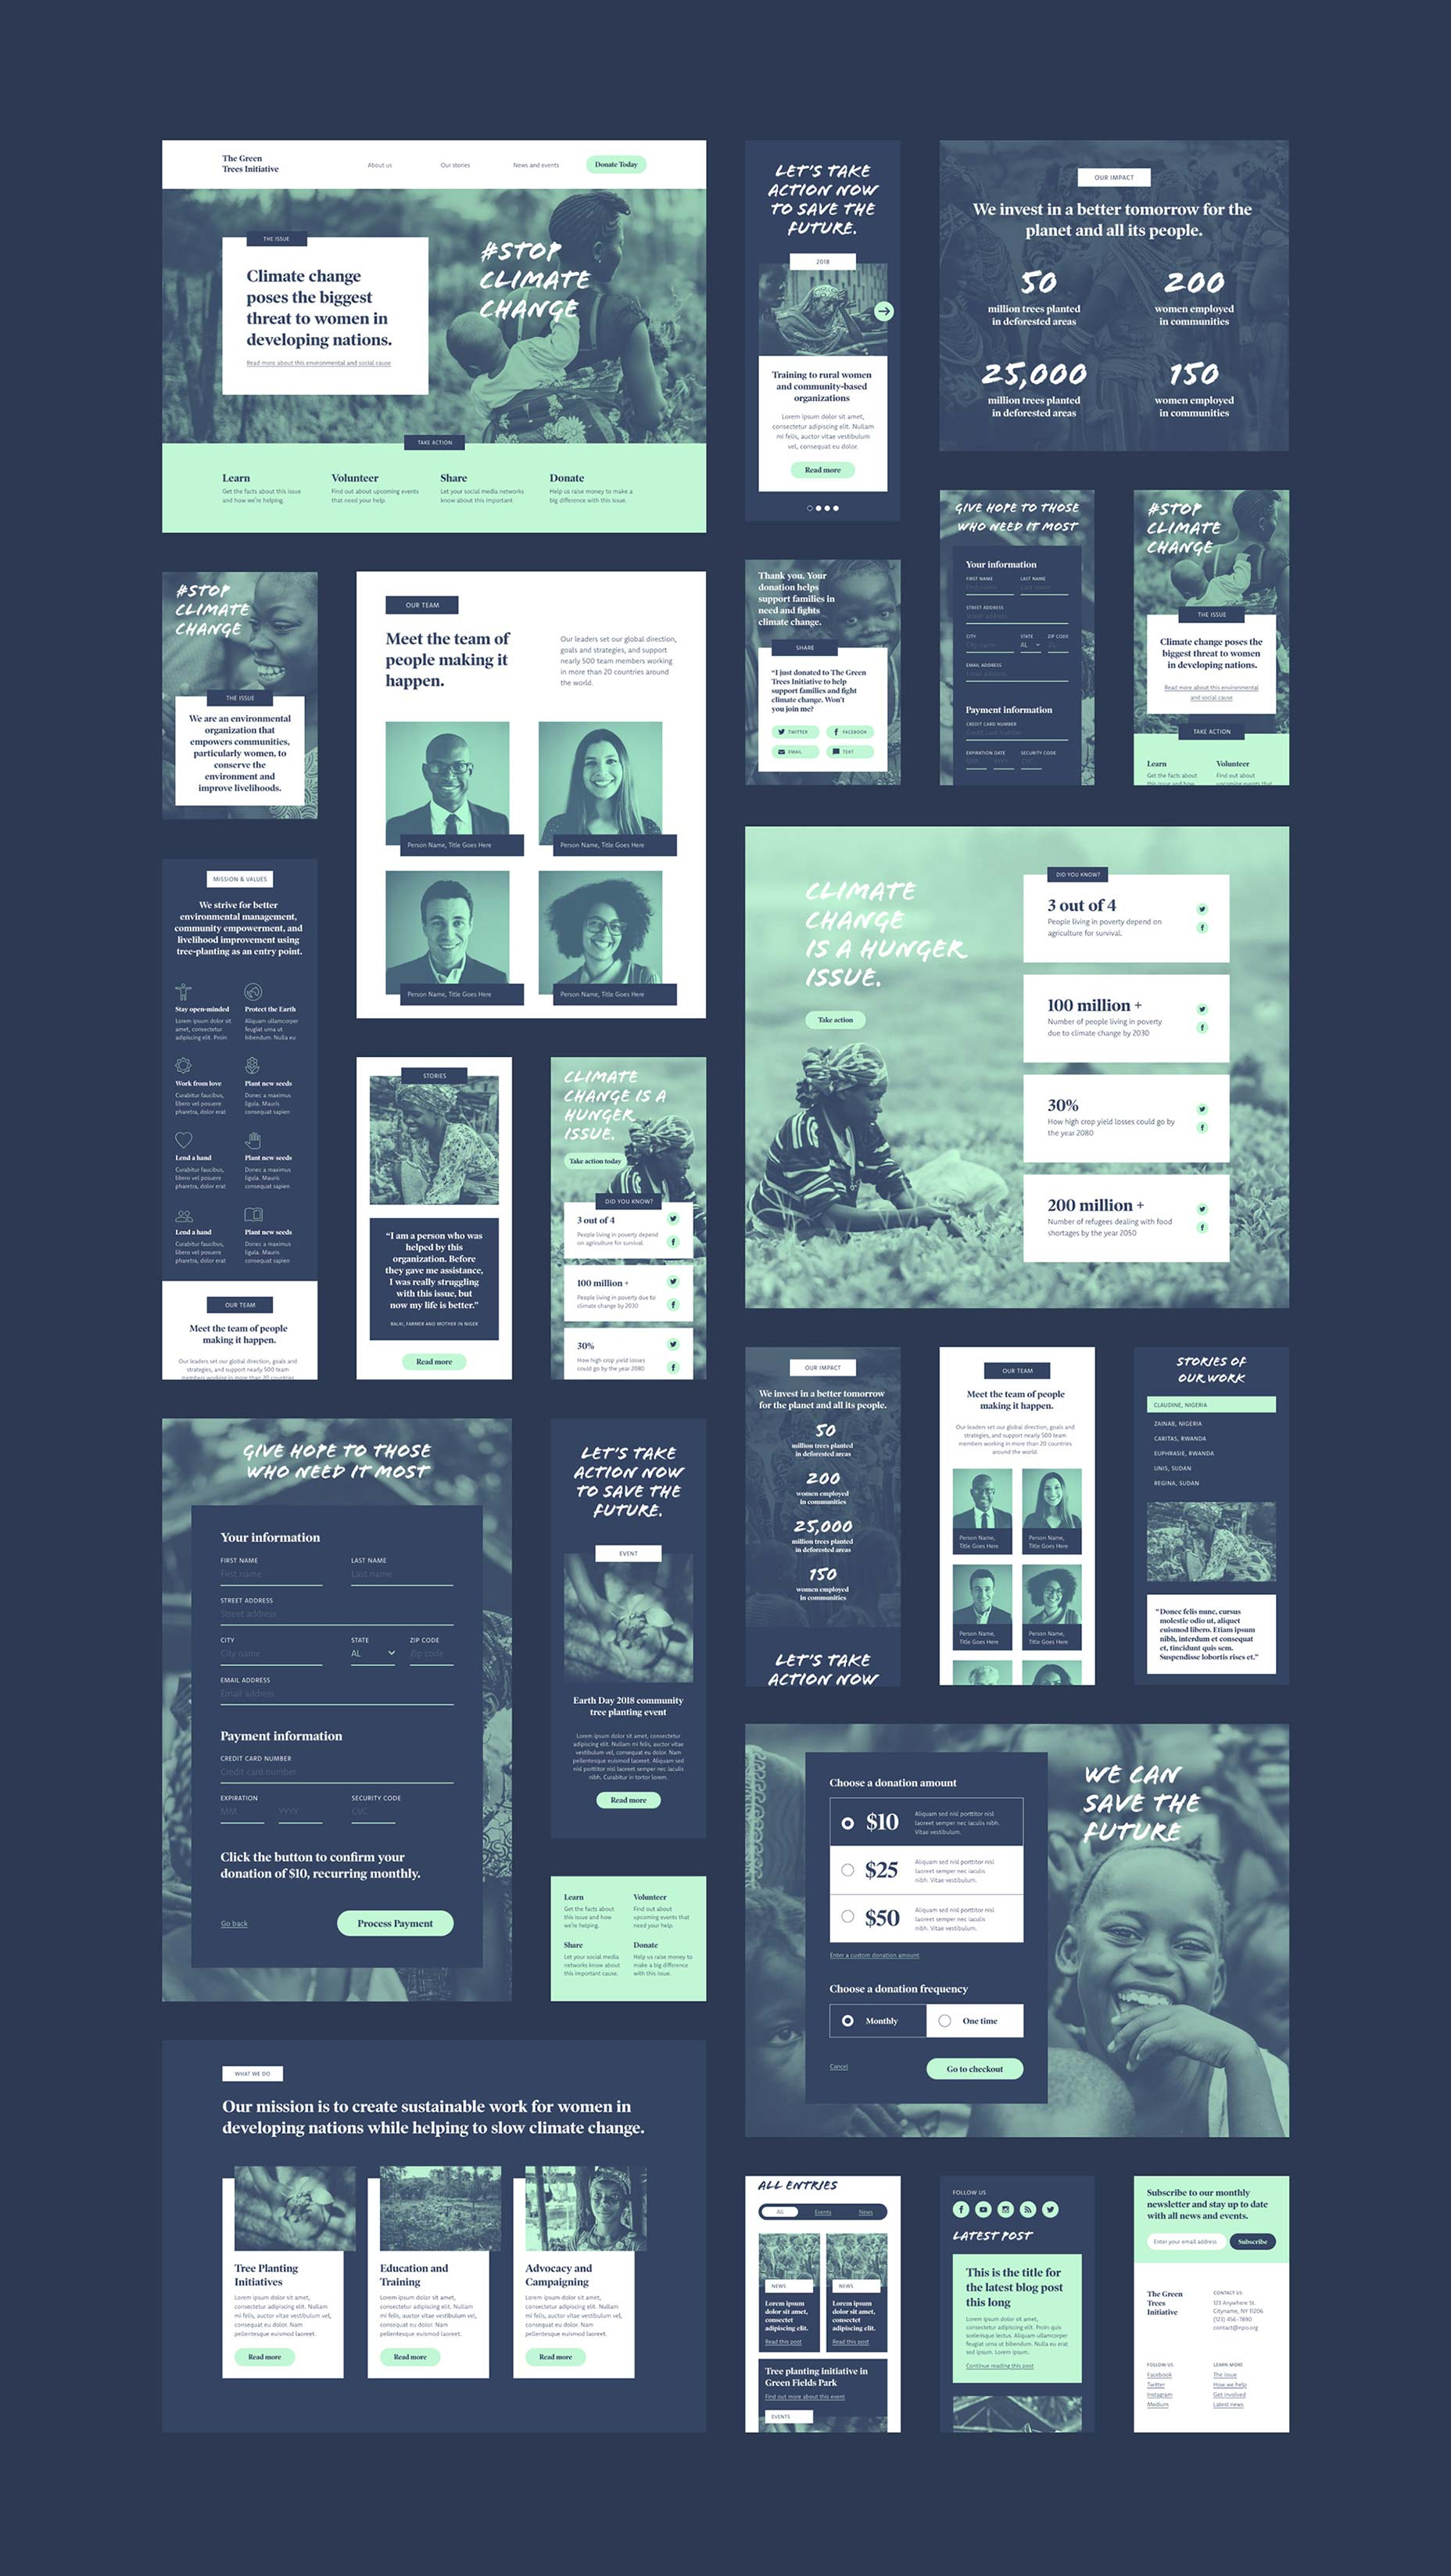 Free Download: Non-Profit UI Kit for Adobe XD | Webdesigner